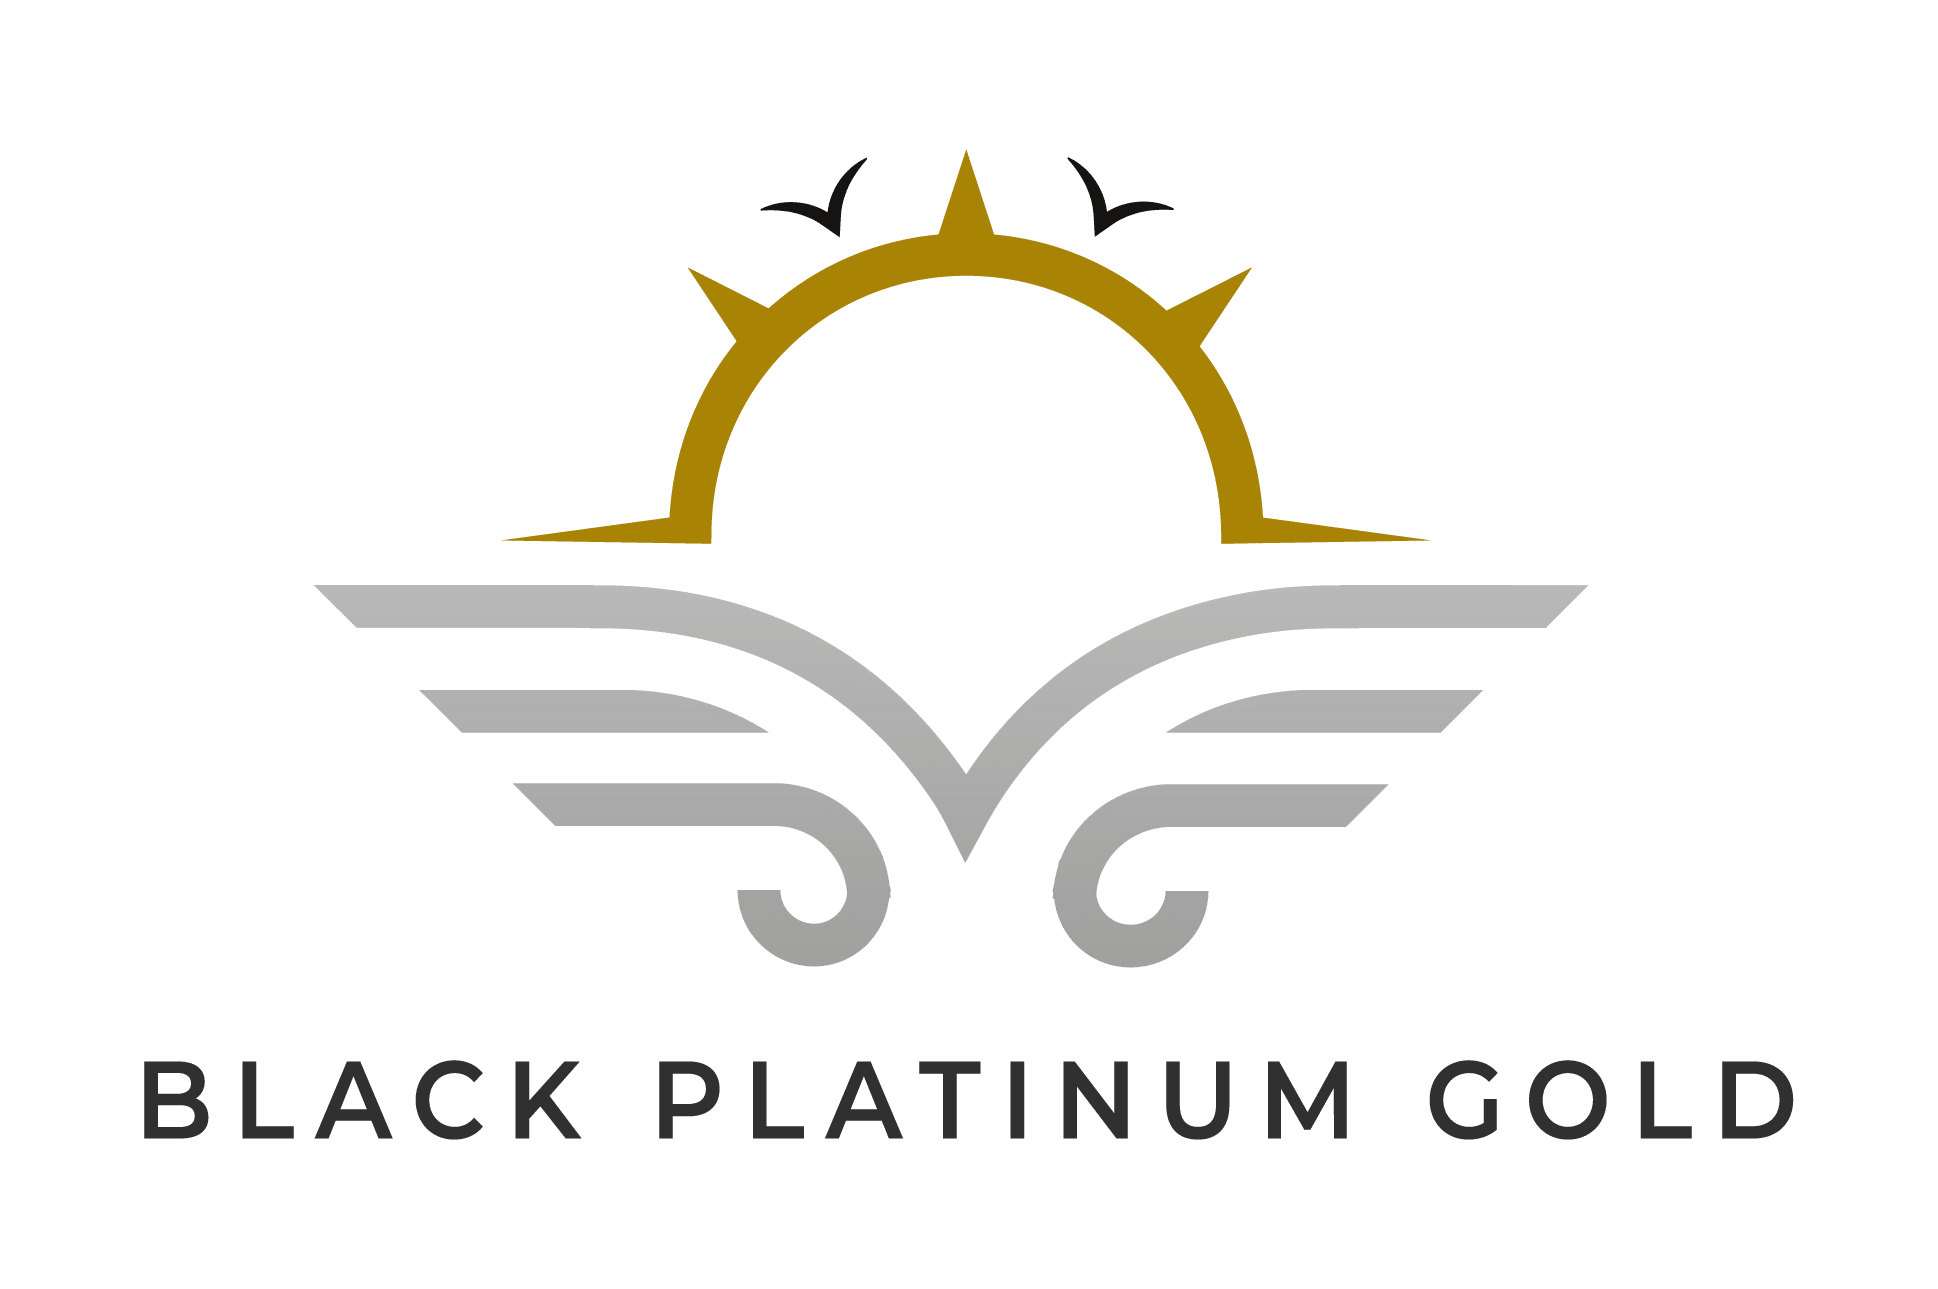 Black Platinum Gold - Luxury Travel Auctions